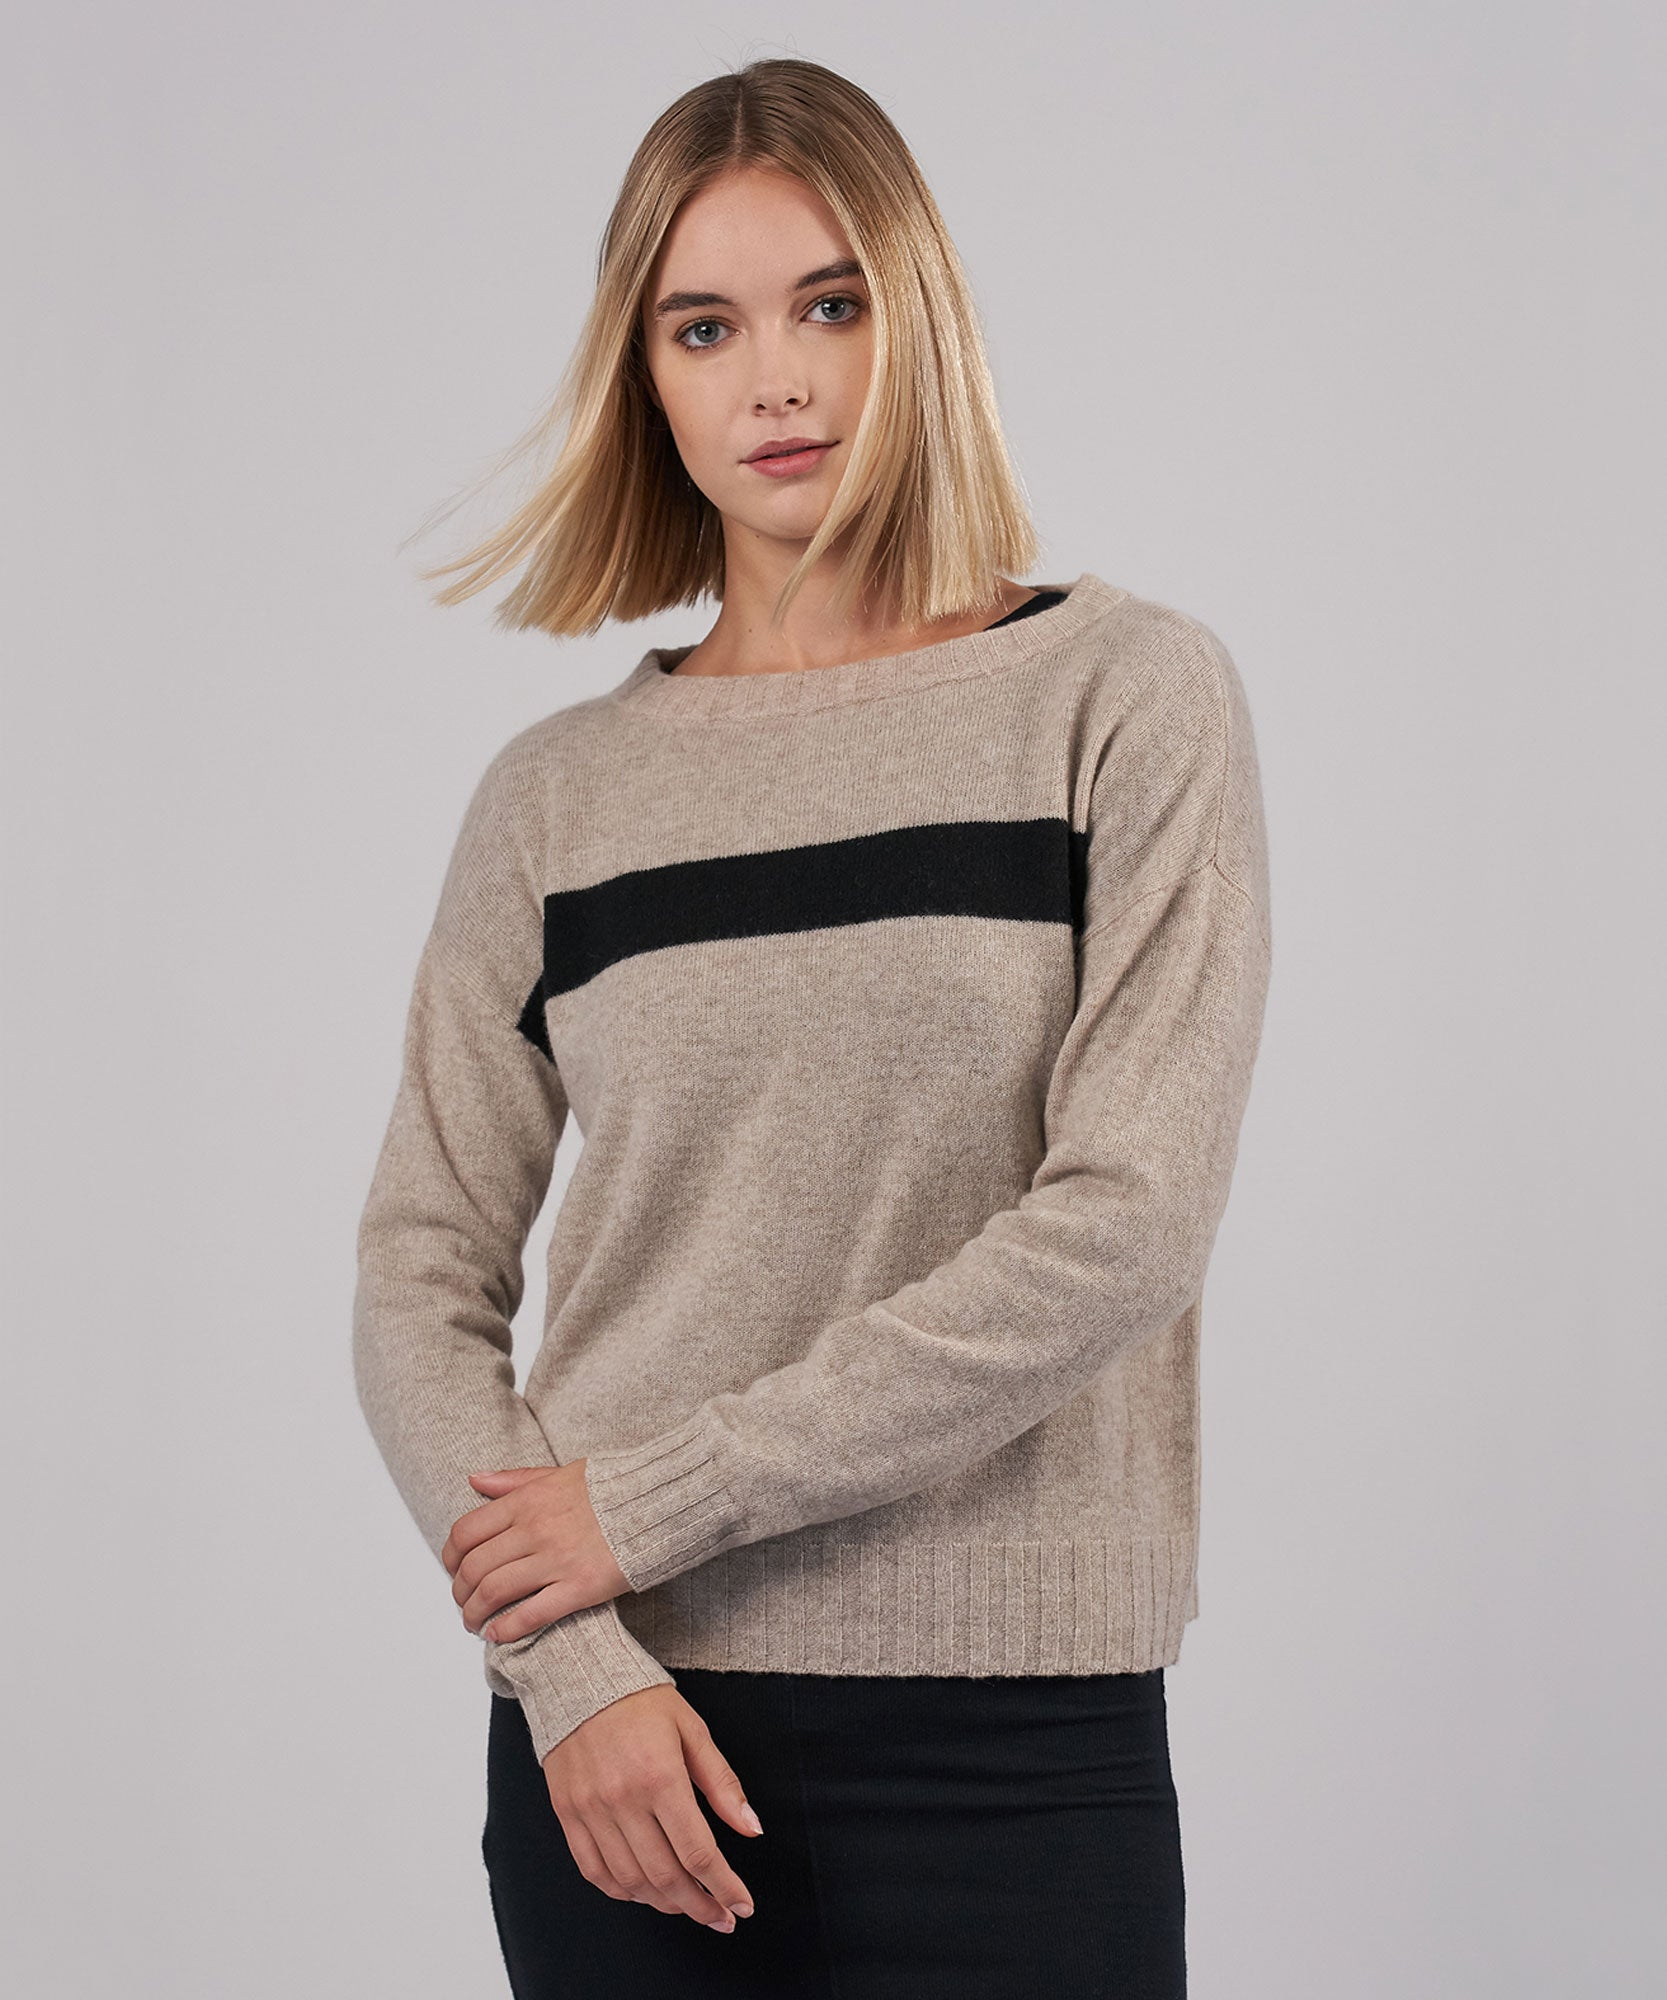 Desert Heather Combo Cashmere Blend Stripe Bateaux Neck Sweater - Women's Luxe Sweater by ATM Anthony Thomas Melillo